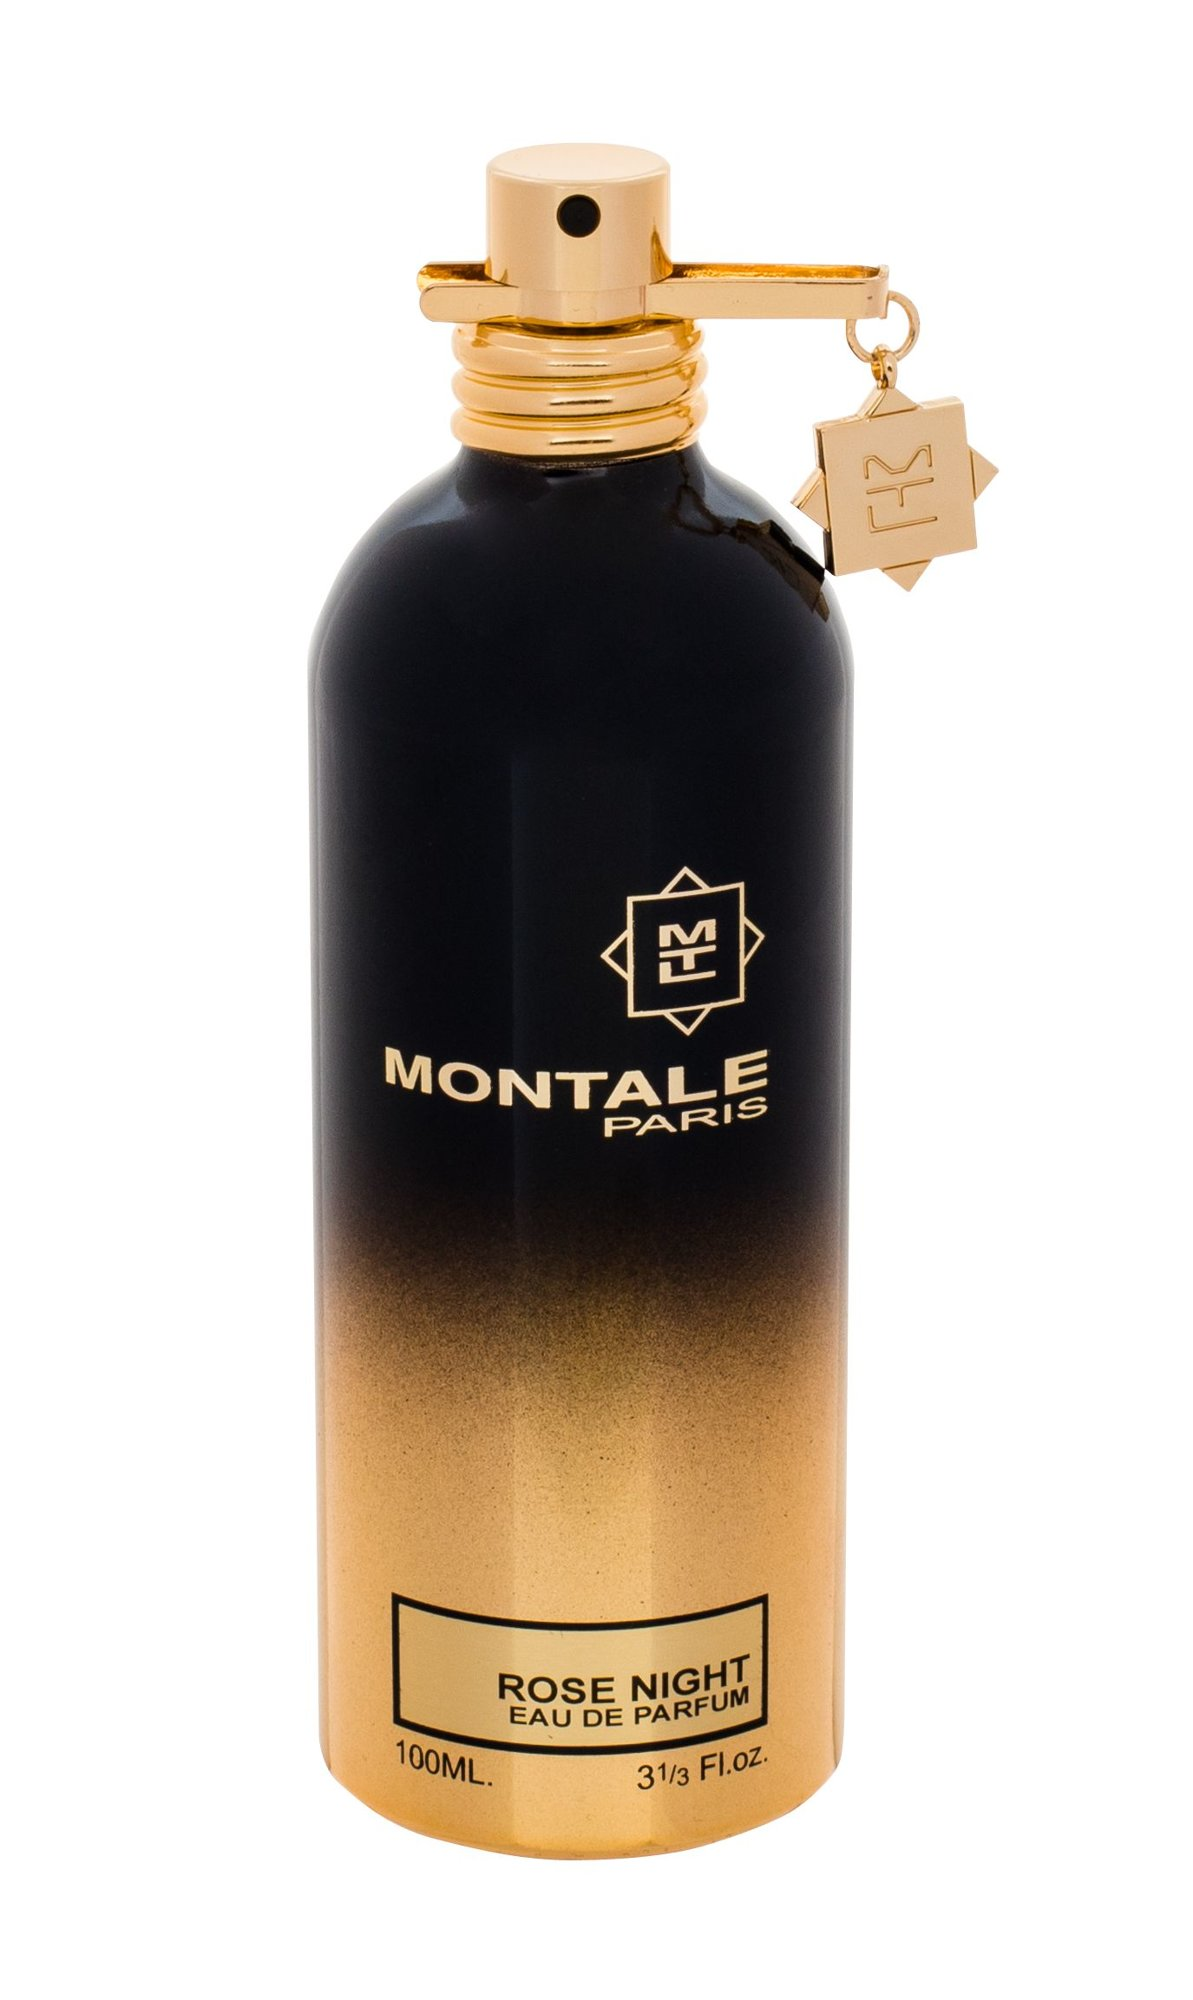 Montale Paris Rose Night EDP 100ml